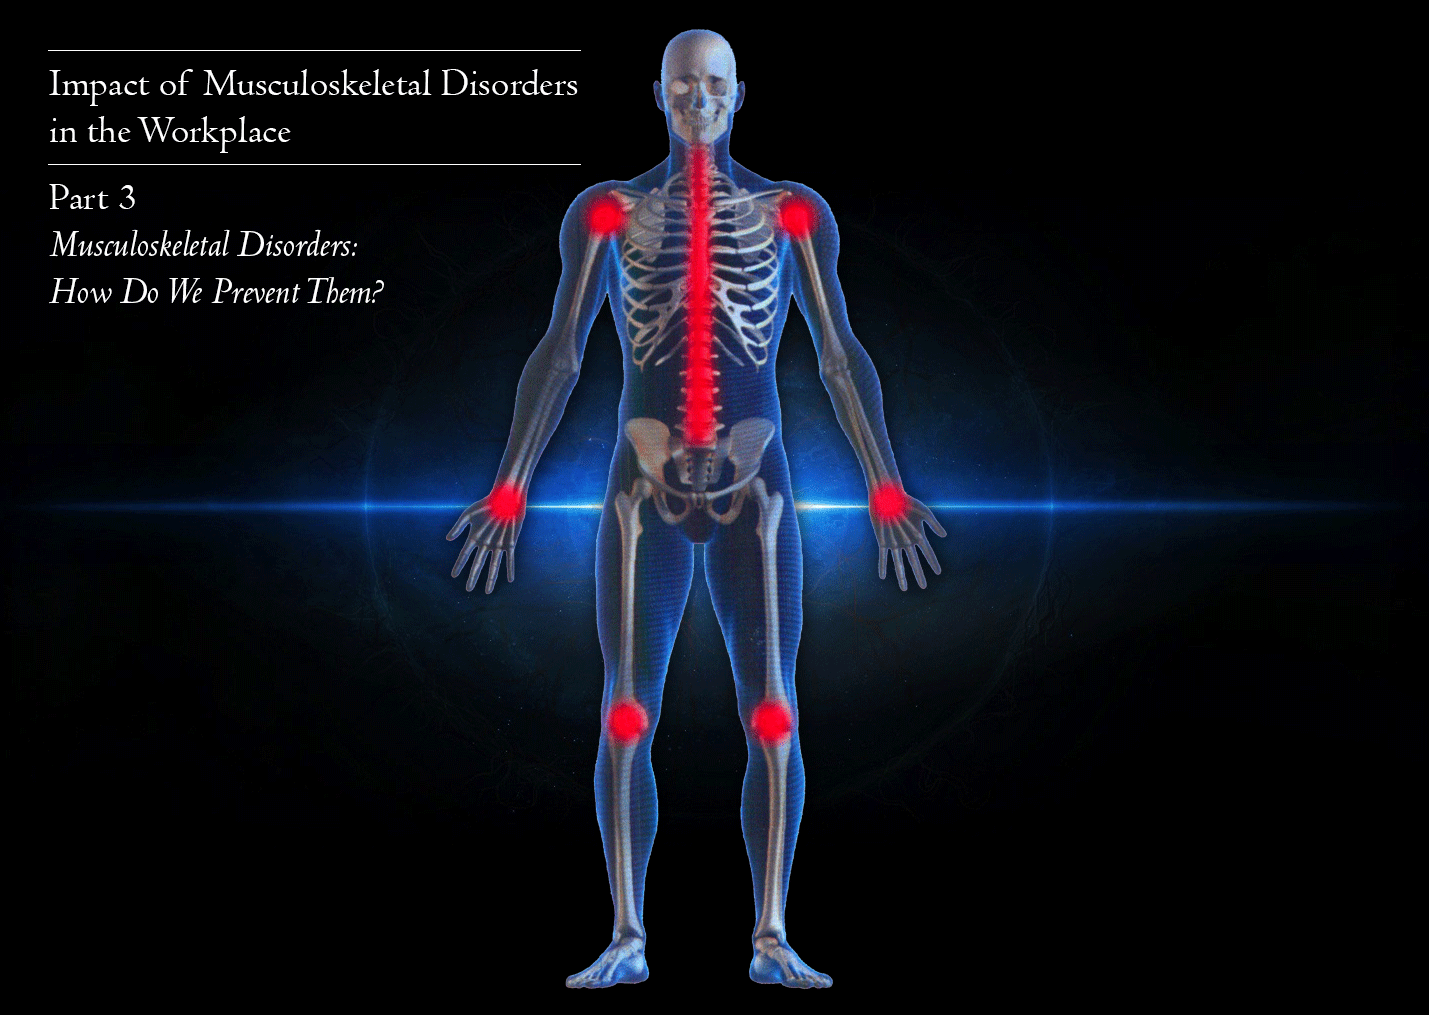 Impact of Musculoskeletal Disorders in the Workplace Part 3